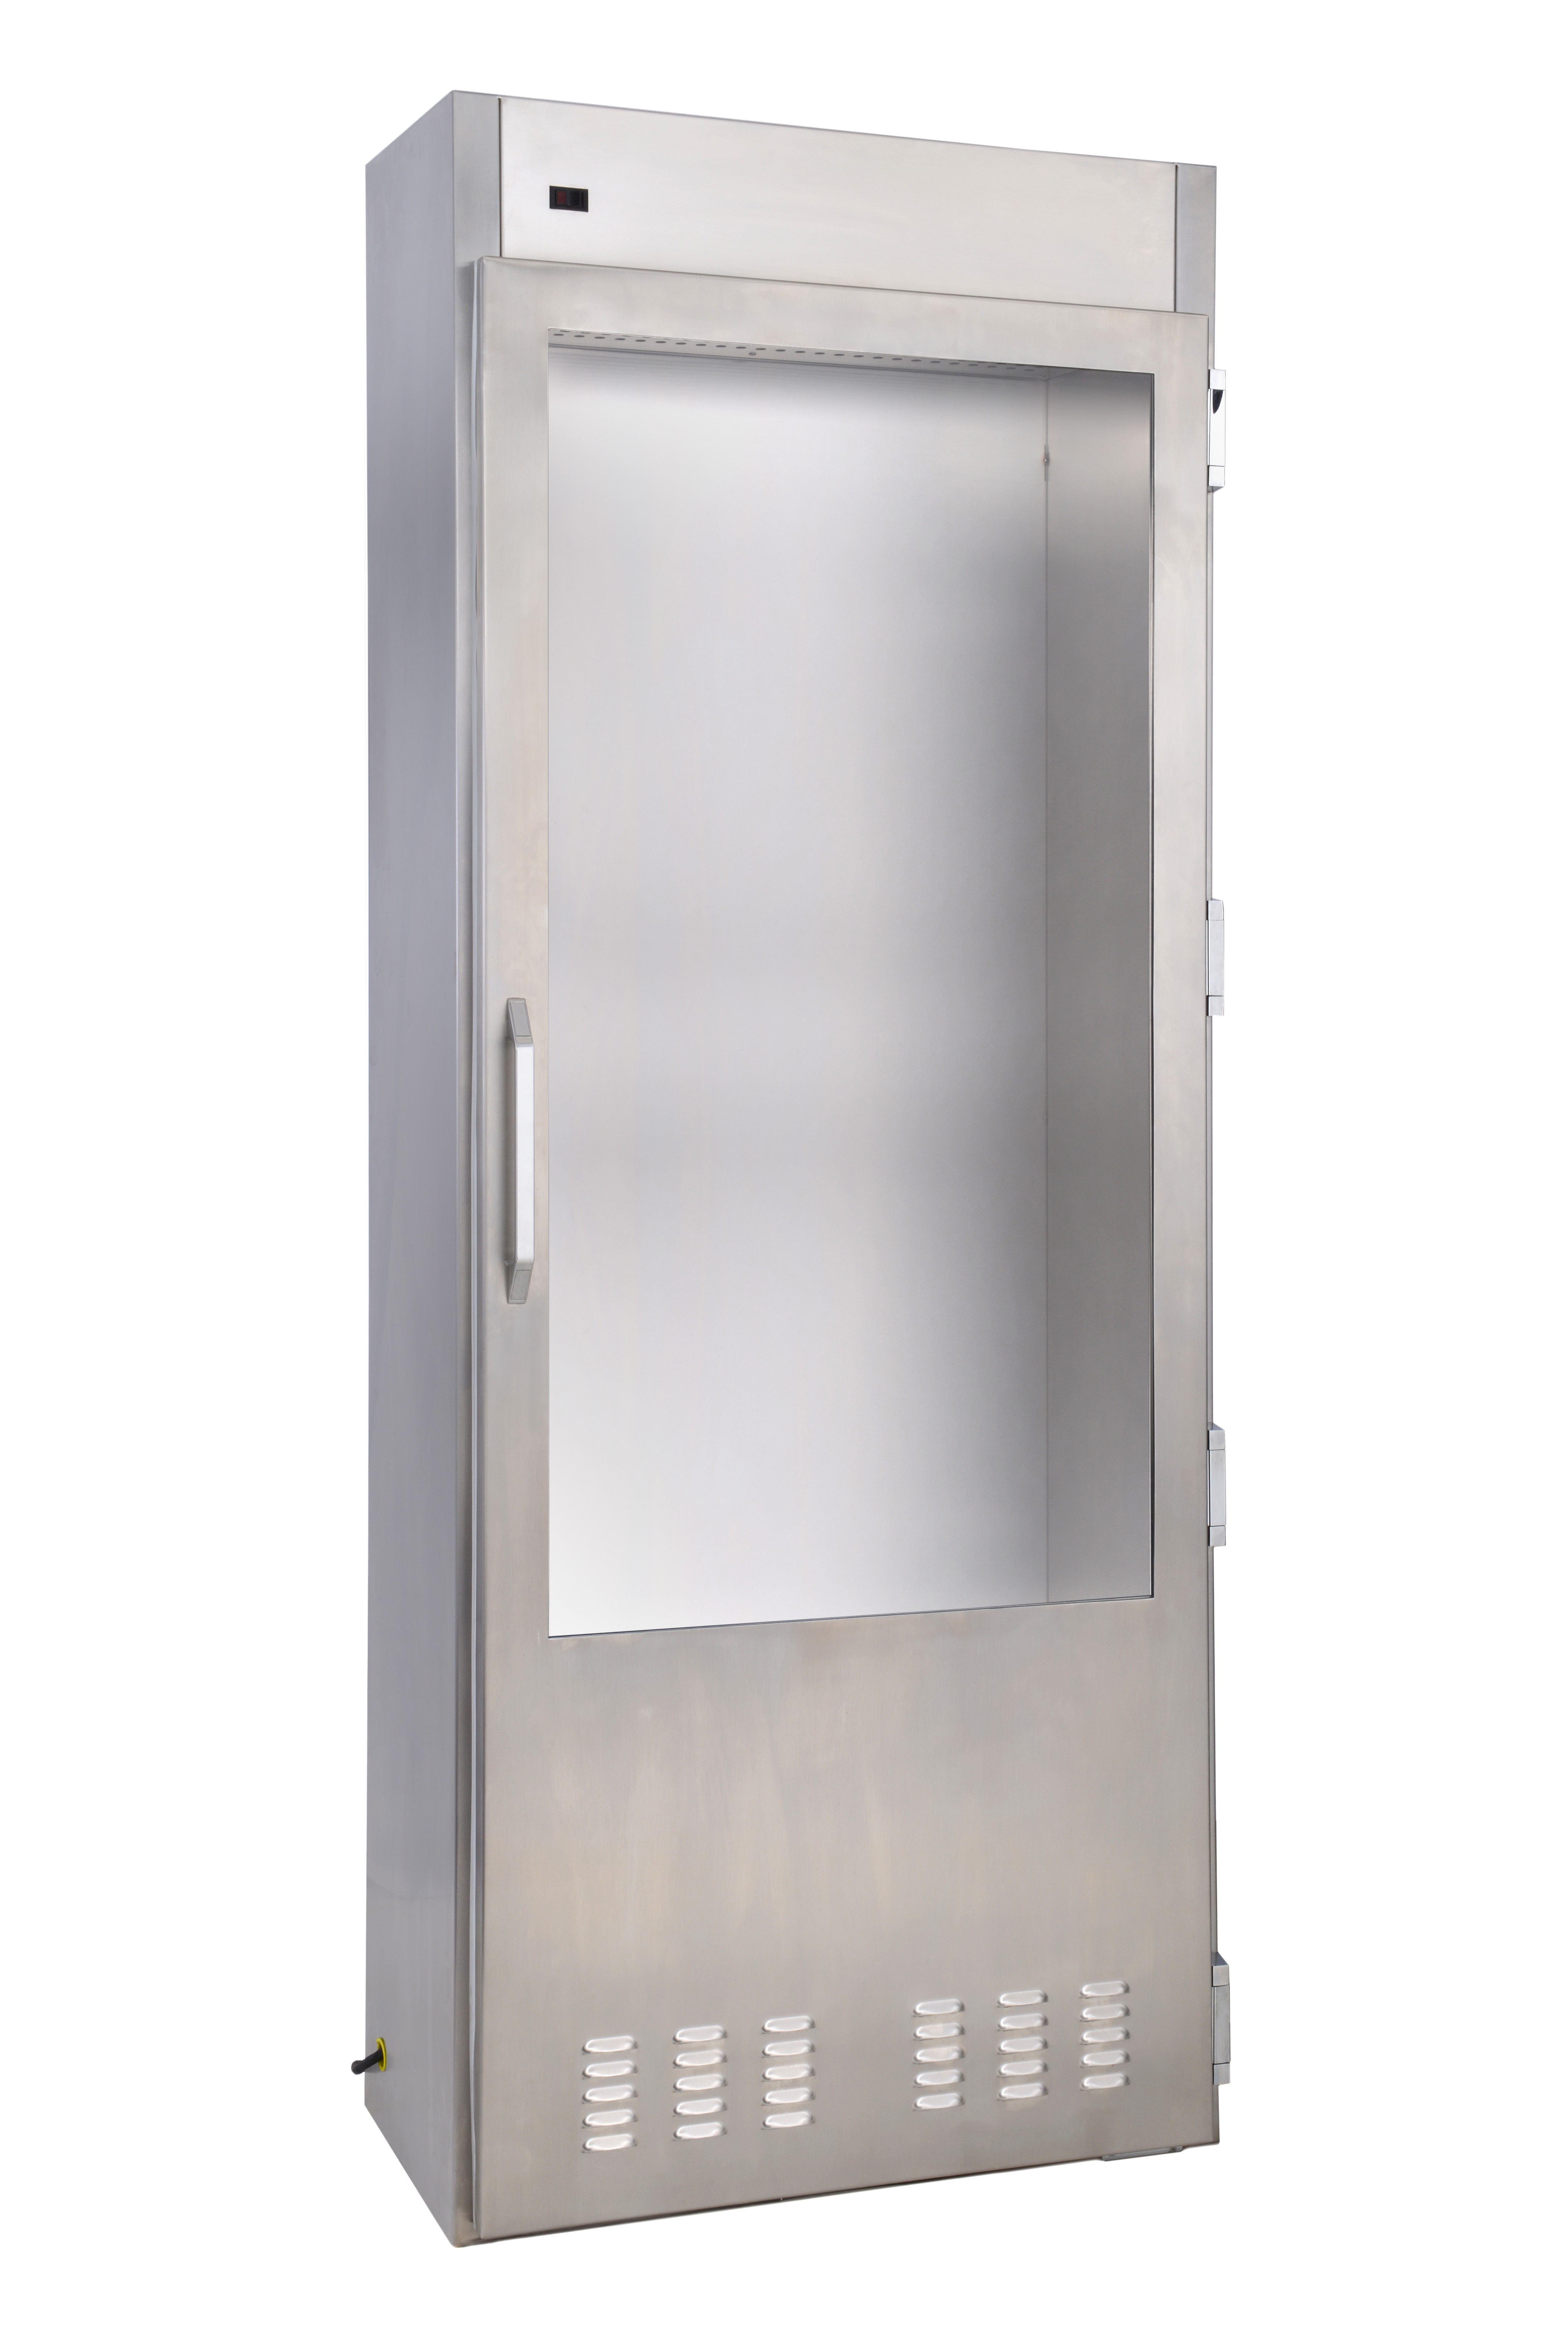 MedWurx_Clean_Air_Ventilated_Endoscope_Cabinet